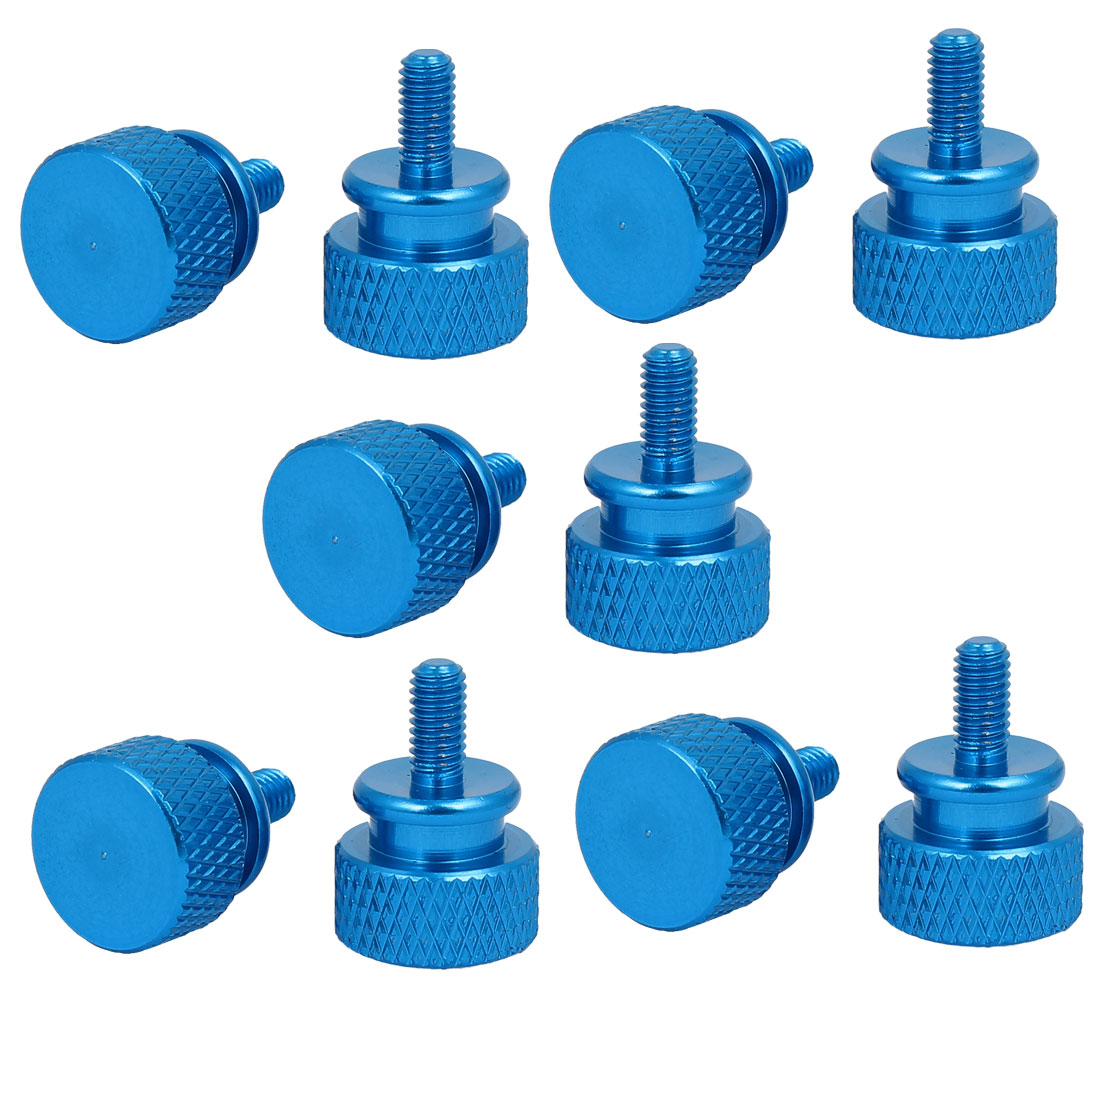 Computer PC Case Fully Threaded Knurled Thumb Screws Sky Blue M3.5x7mm 10pcs